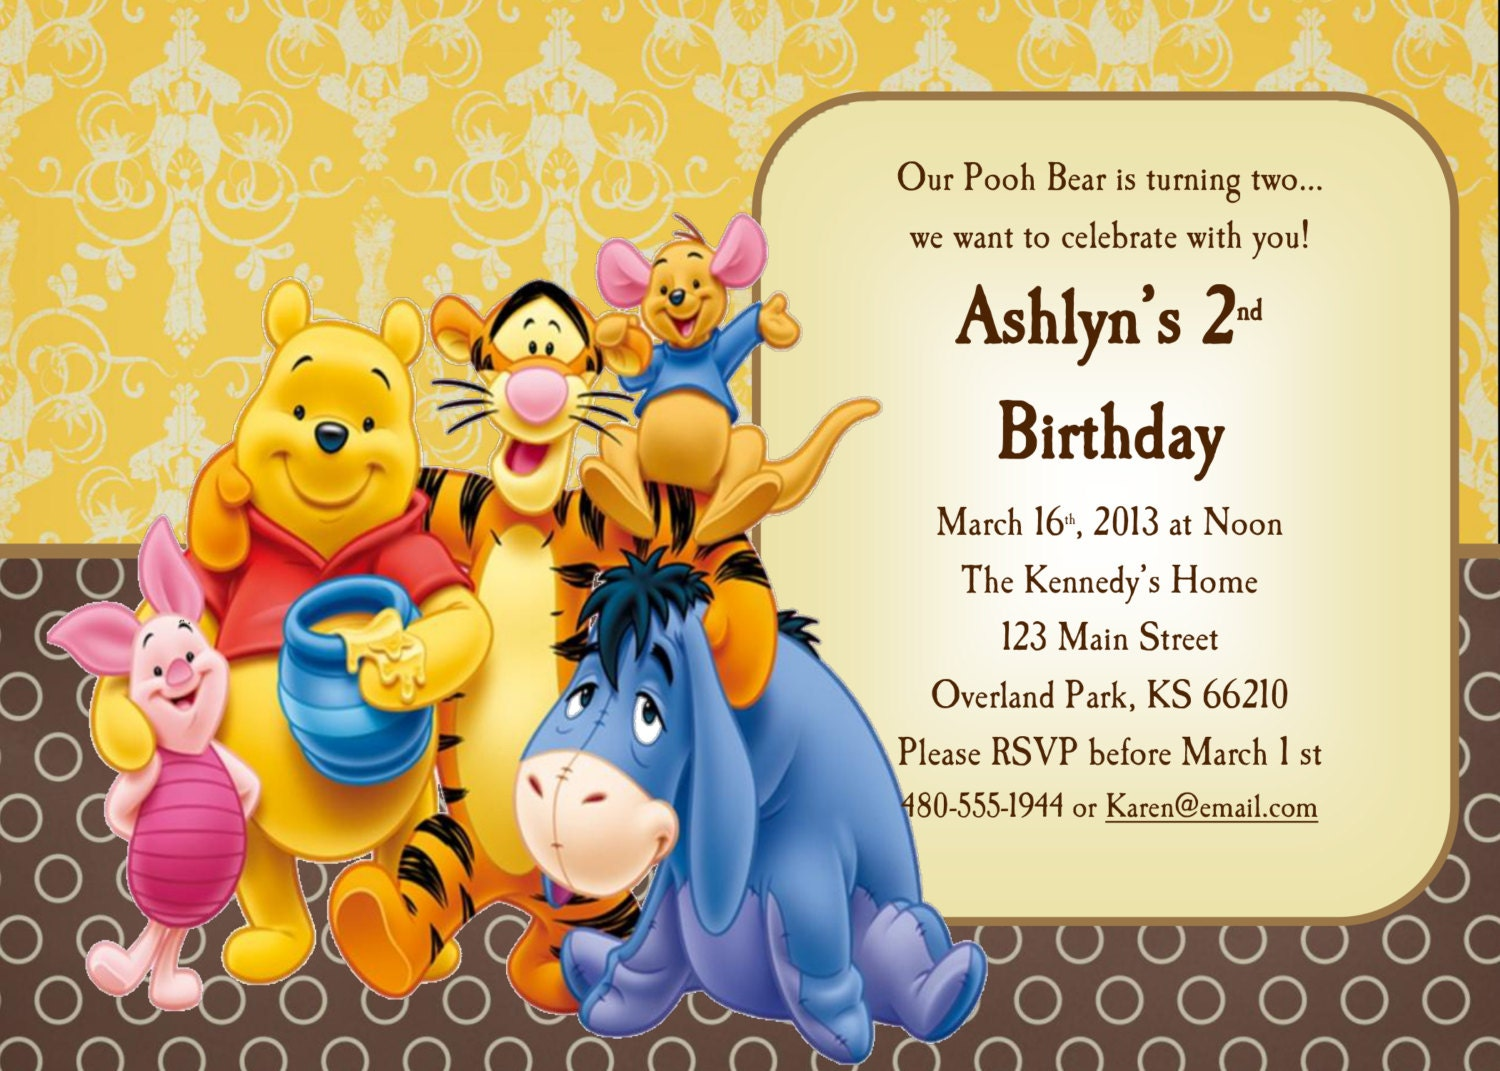 Online Birthday Invitations Maker as perfect invitations ideas